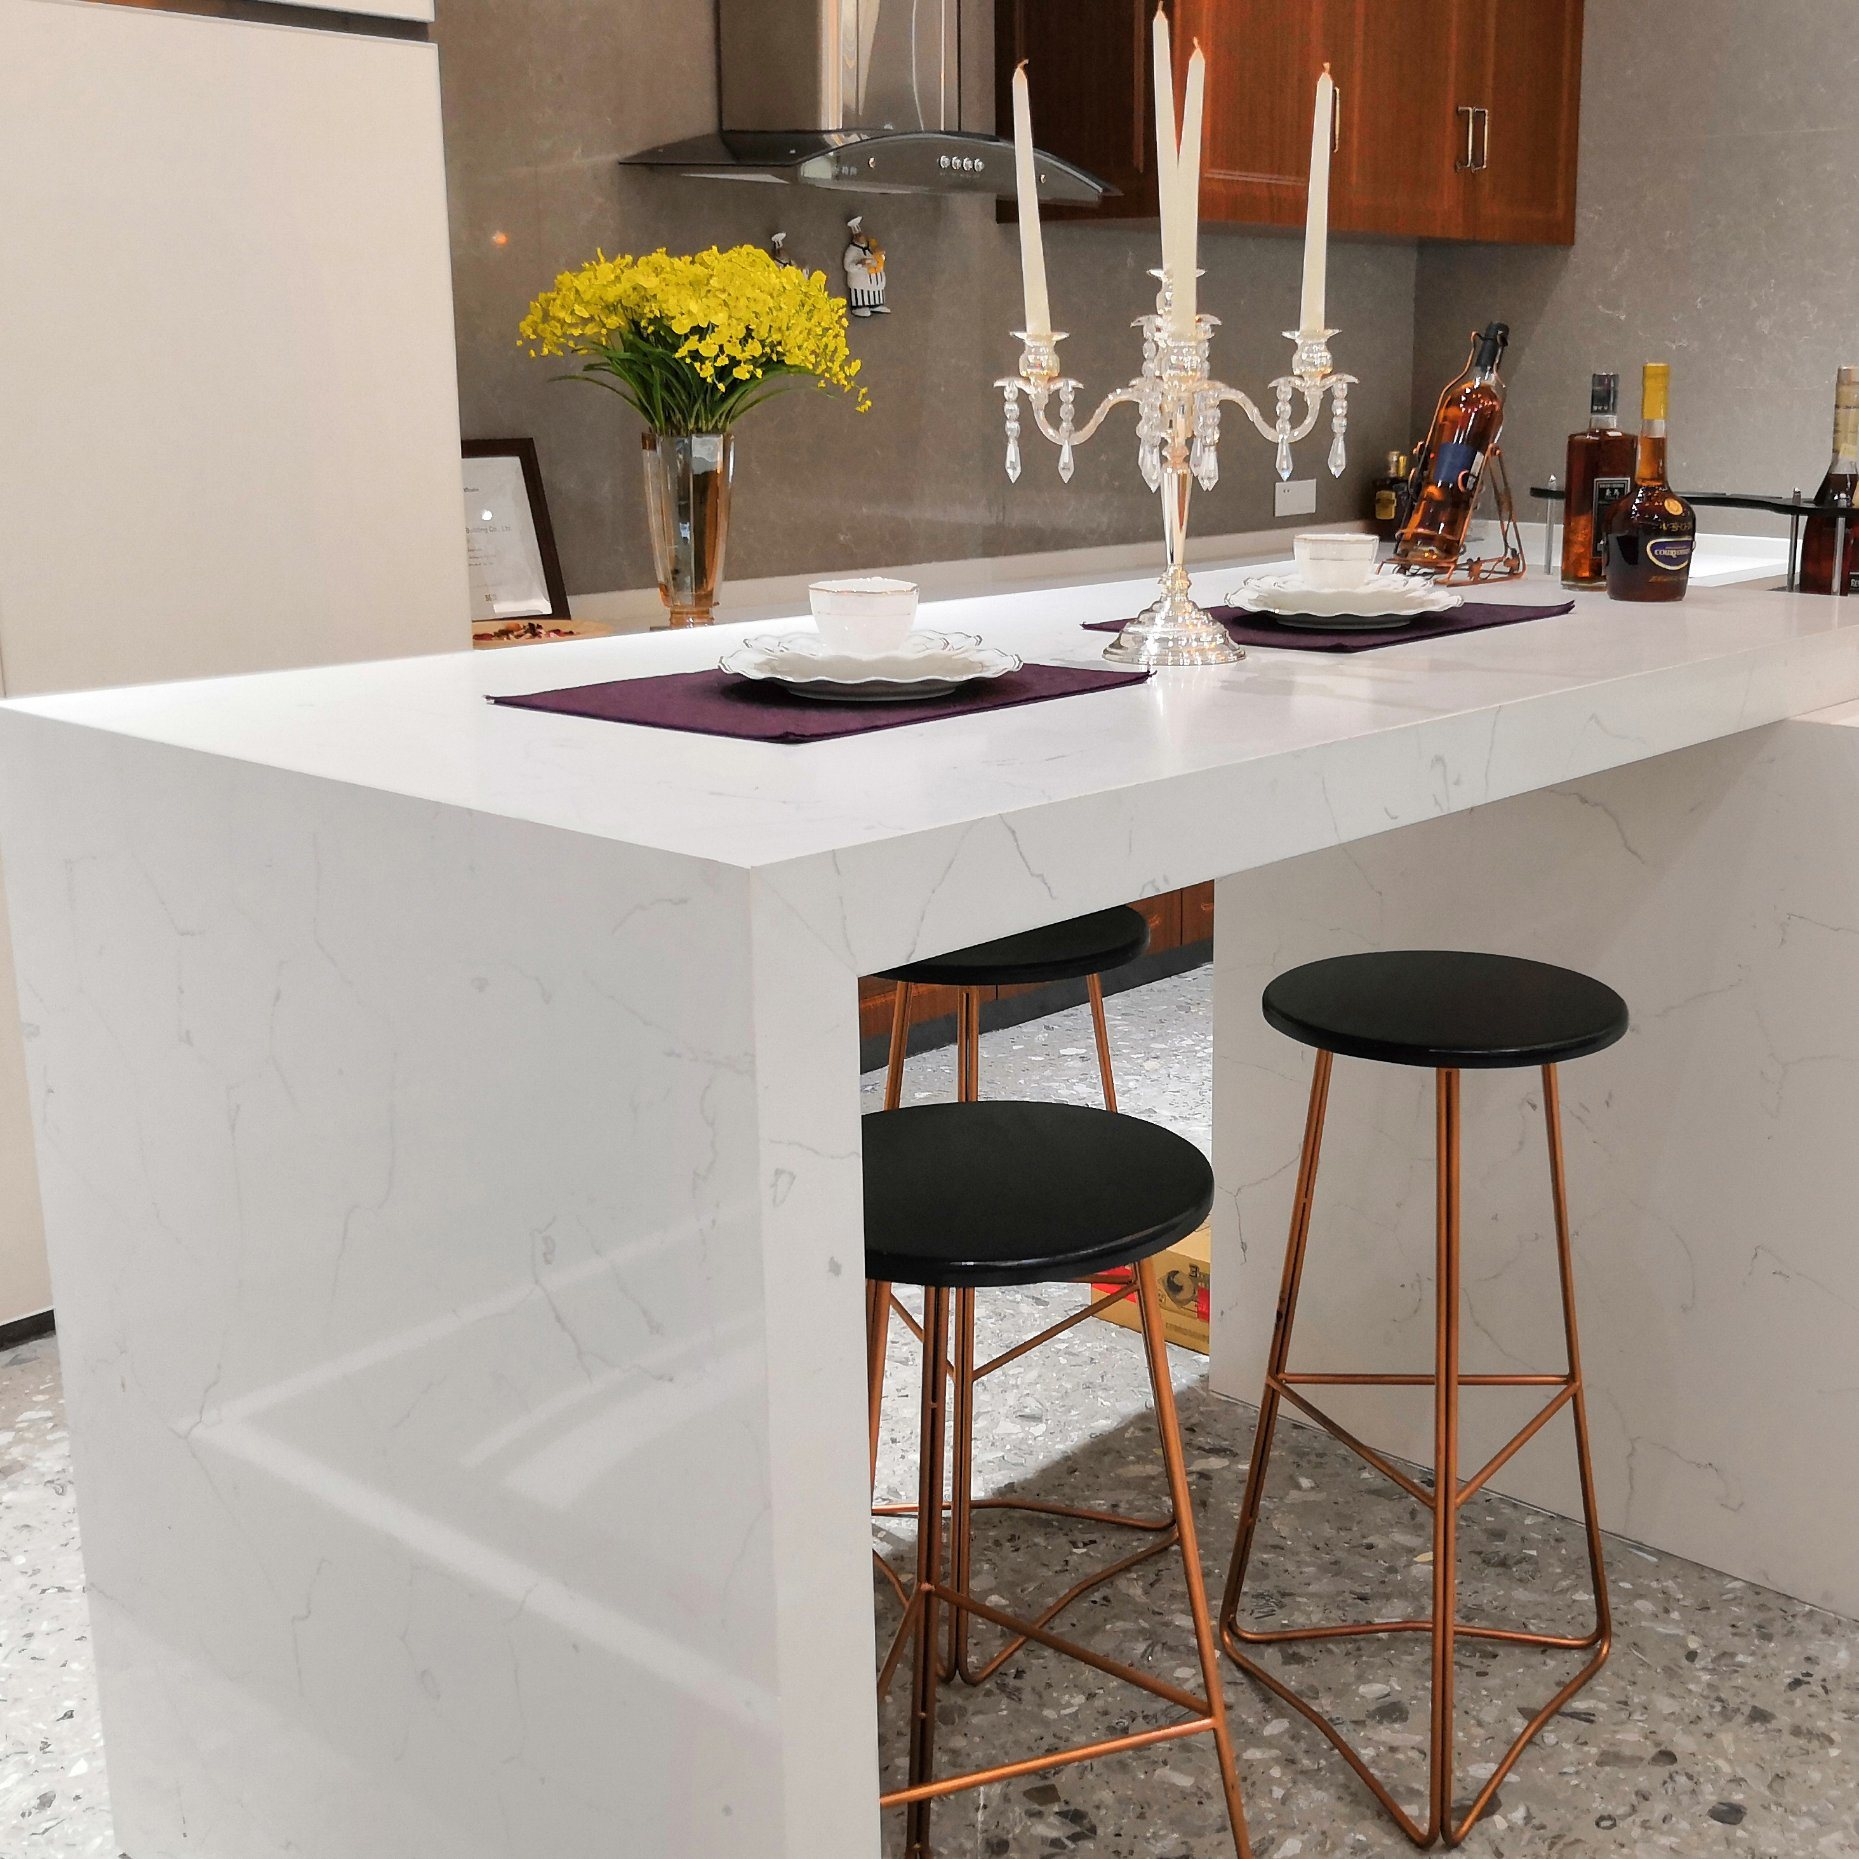 [Hot Item] 9mm 9mm 9mm 9mm Kitchen Artificial Marble Quartz Stone Slab  Work Table Countertop